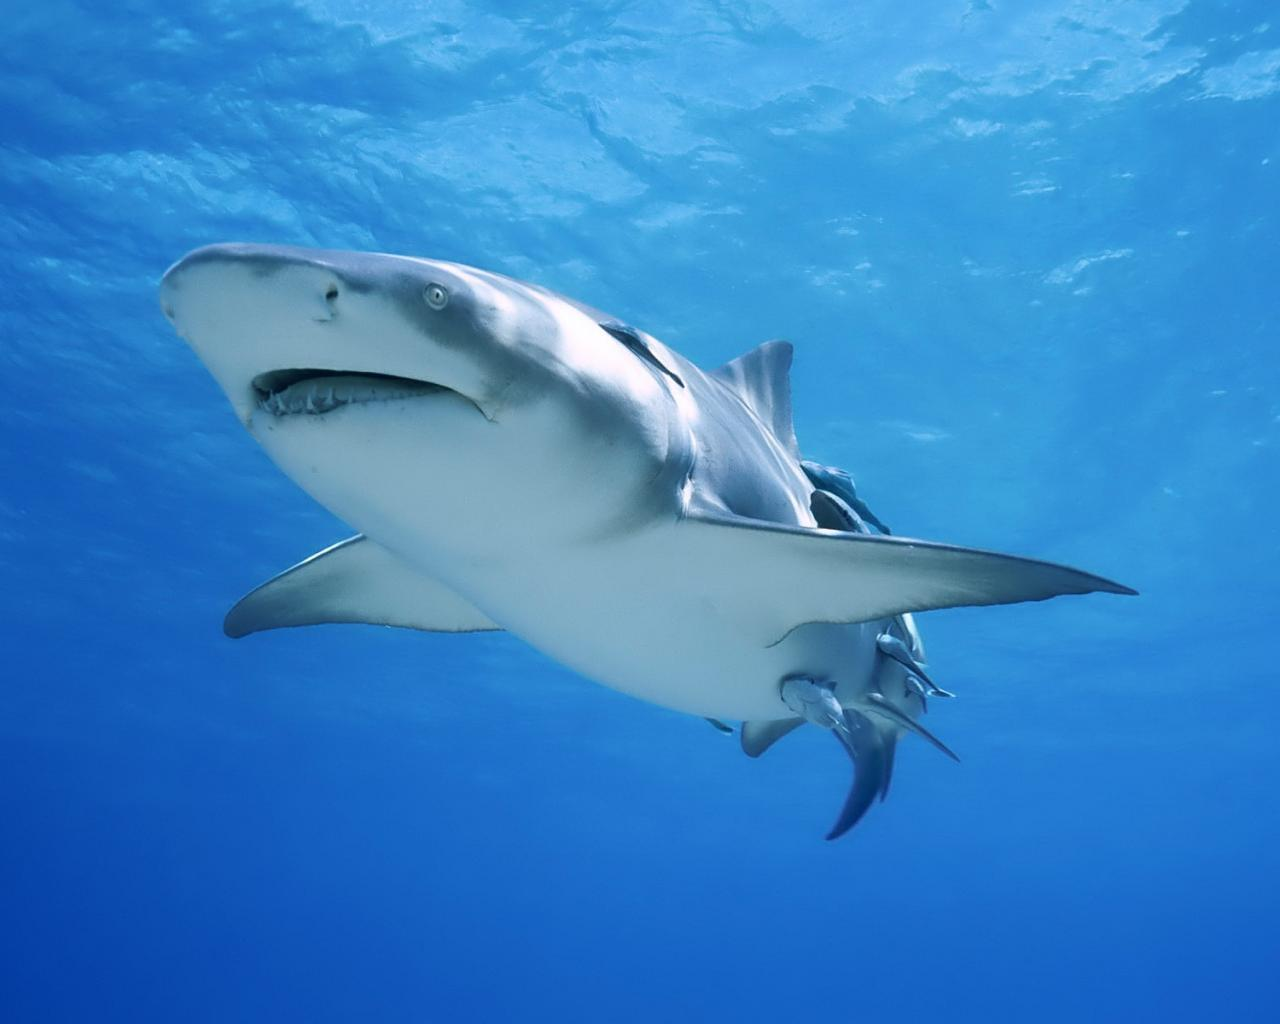 22945 download wallpaper Animals, Sea, Sharks, Fishes screensavers and pictures for free